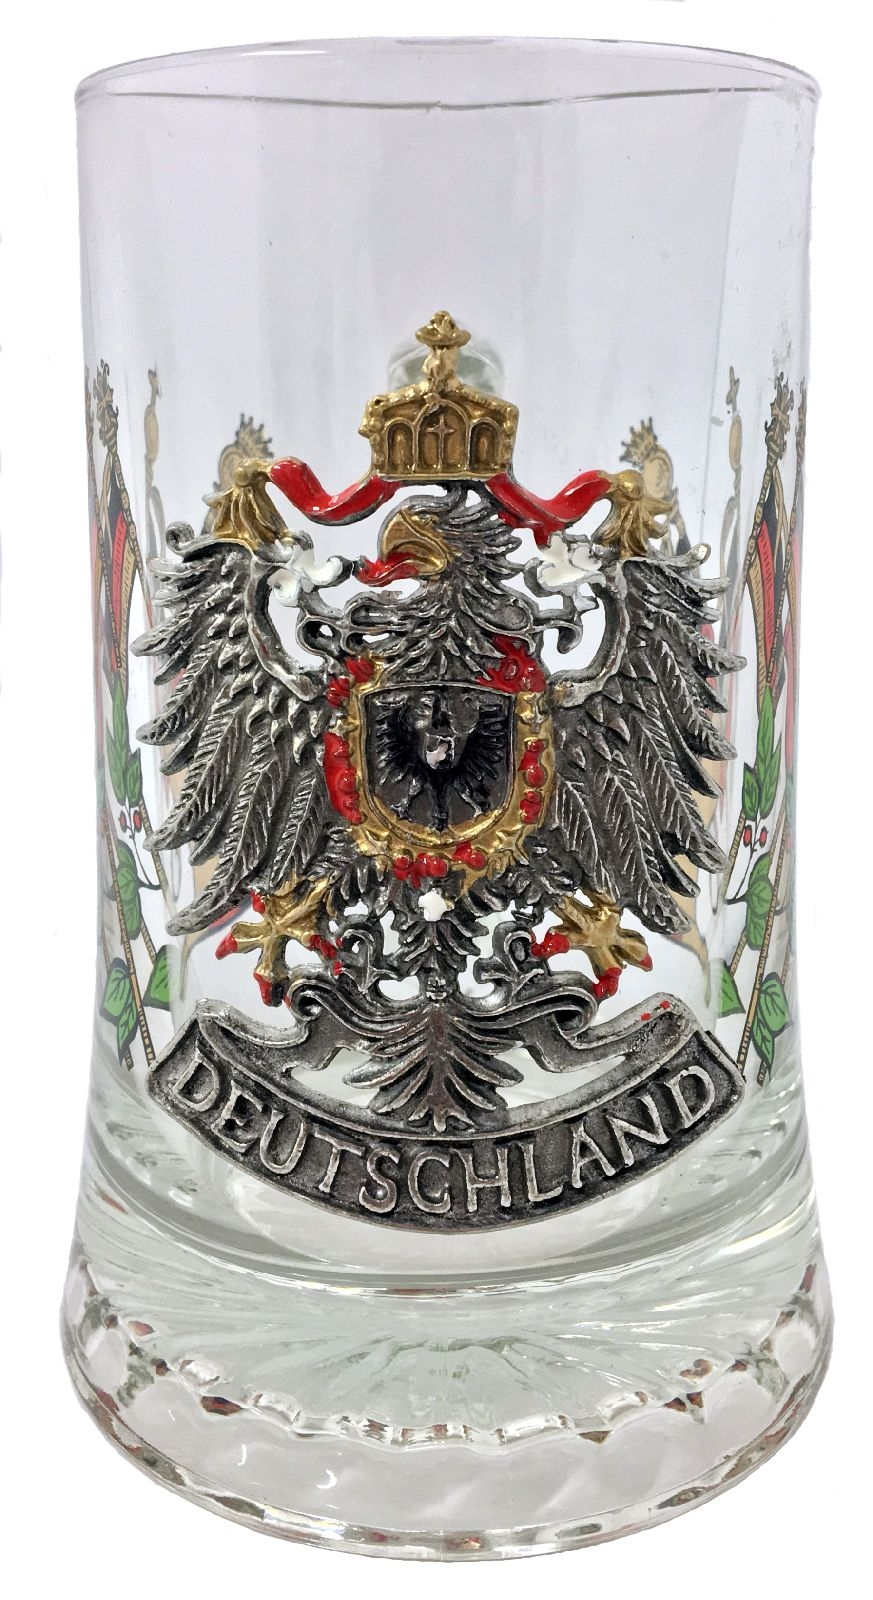 Deutschland Germany Pewter Eagle with Flags Glass European Beer Stein .4 L